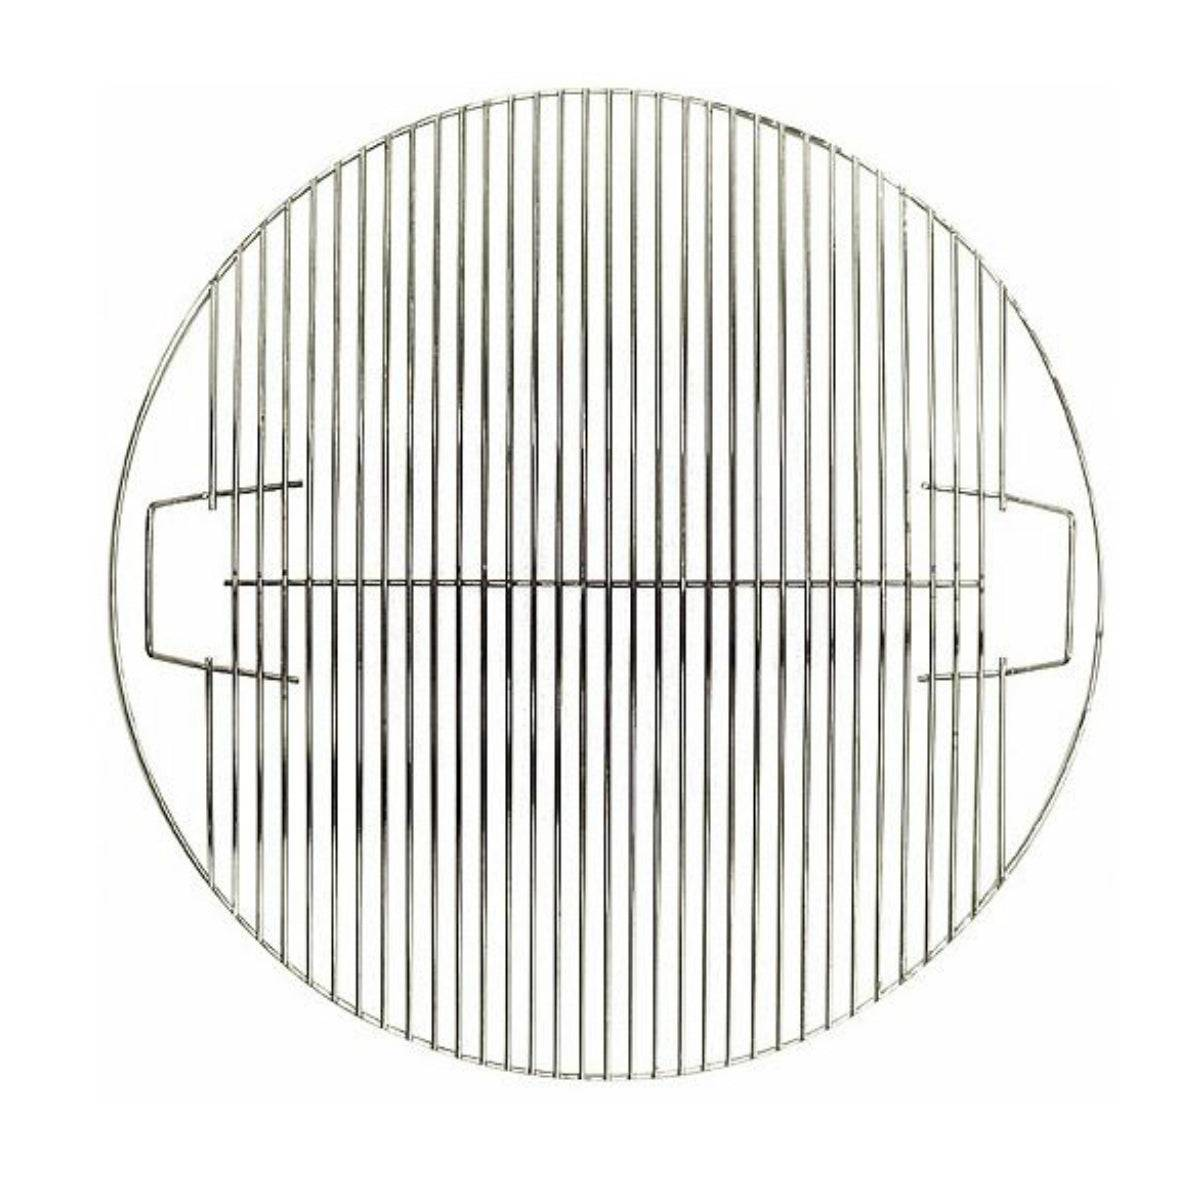 Grill Pro 91070 Round Kettle Cooking Grid, 21.5""